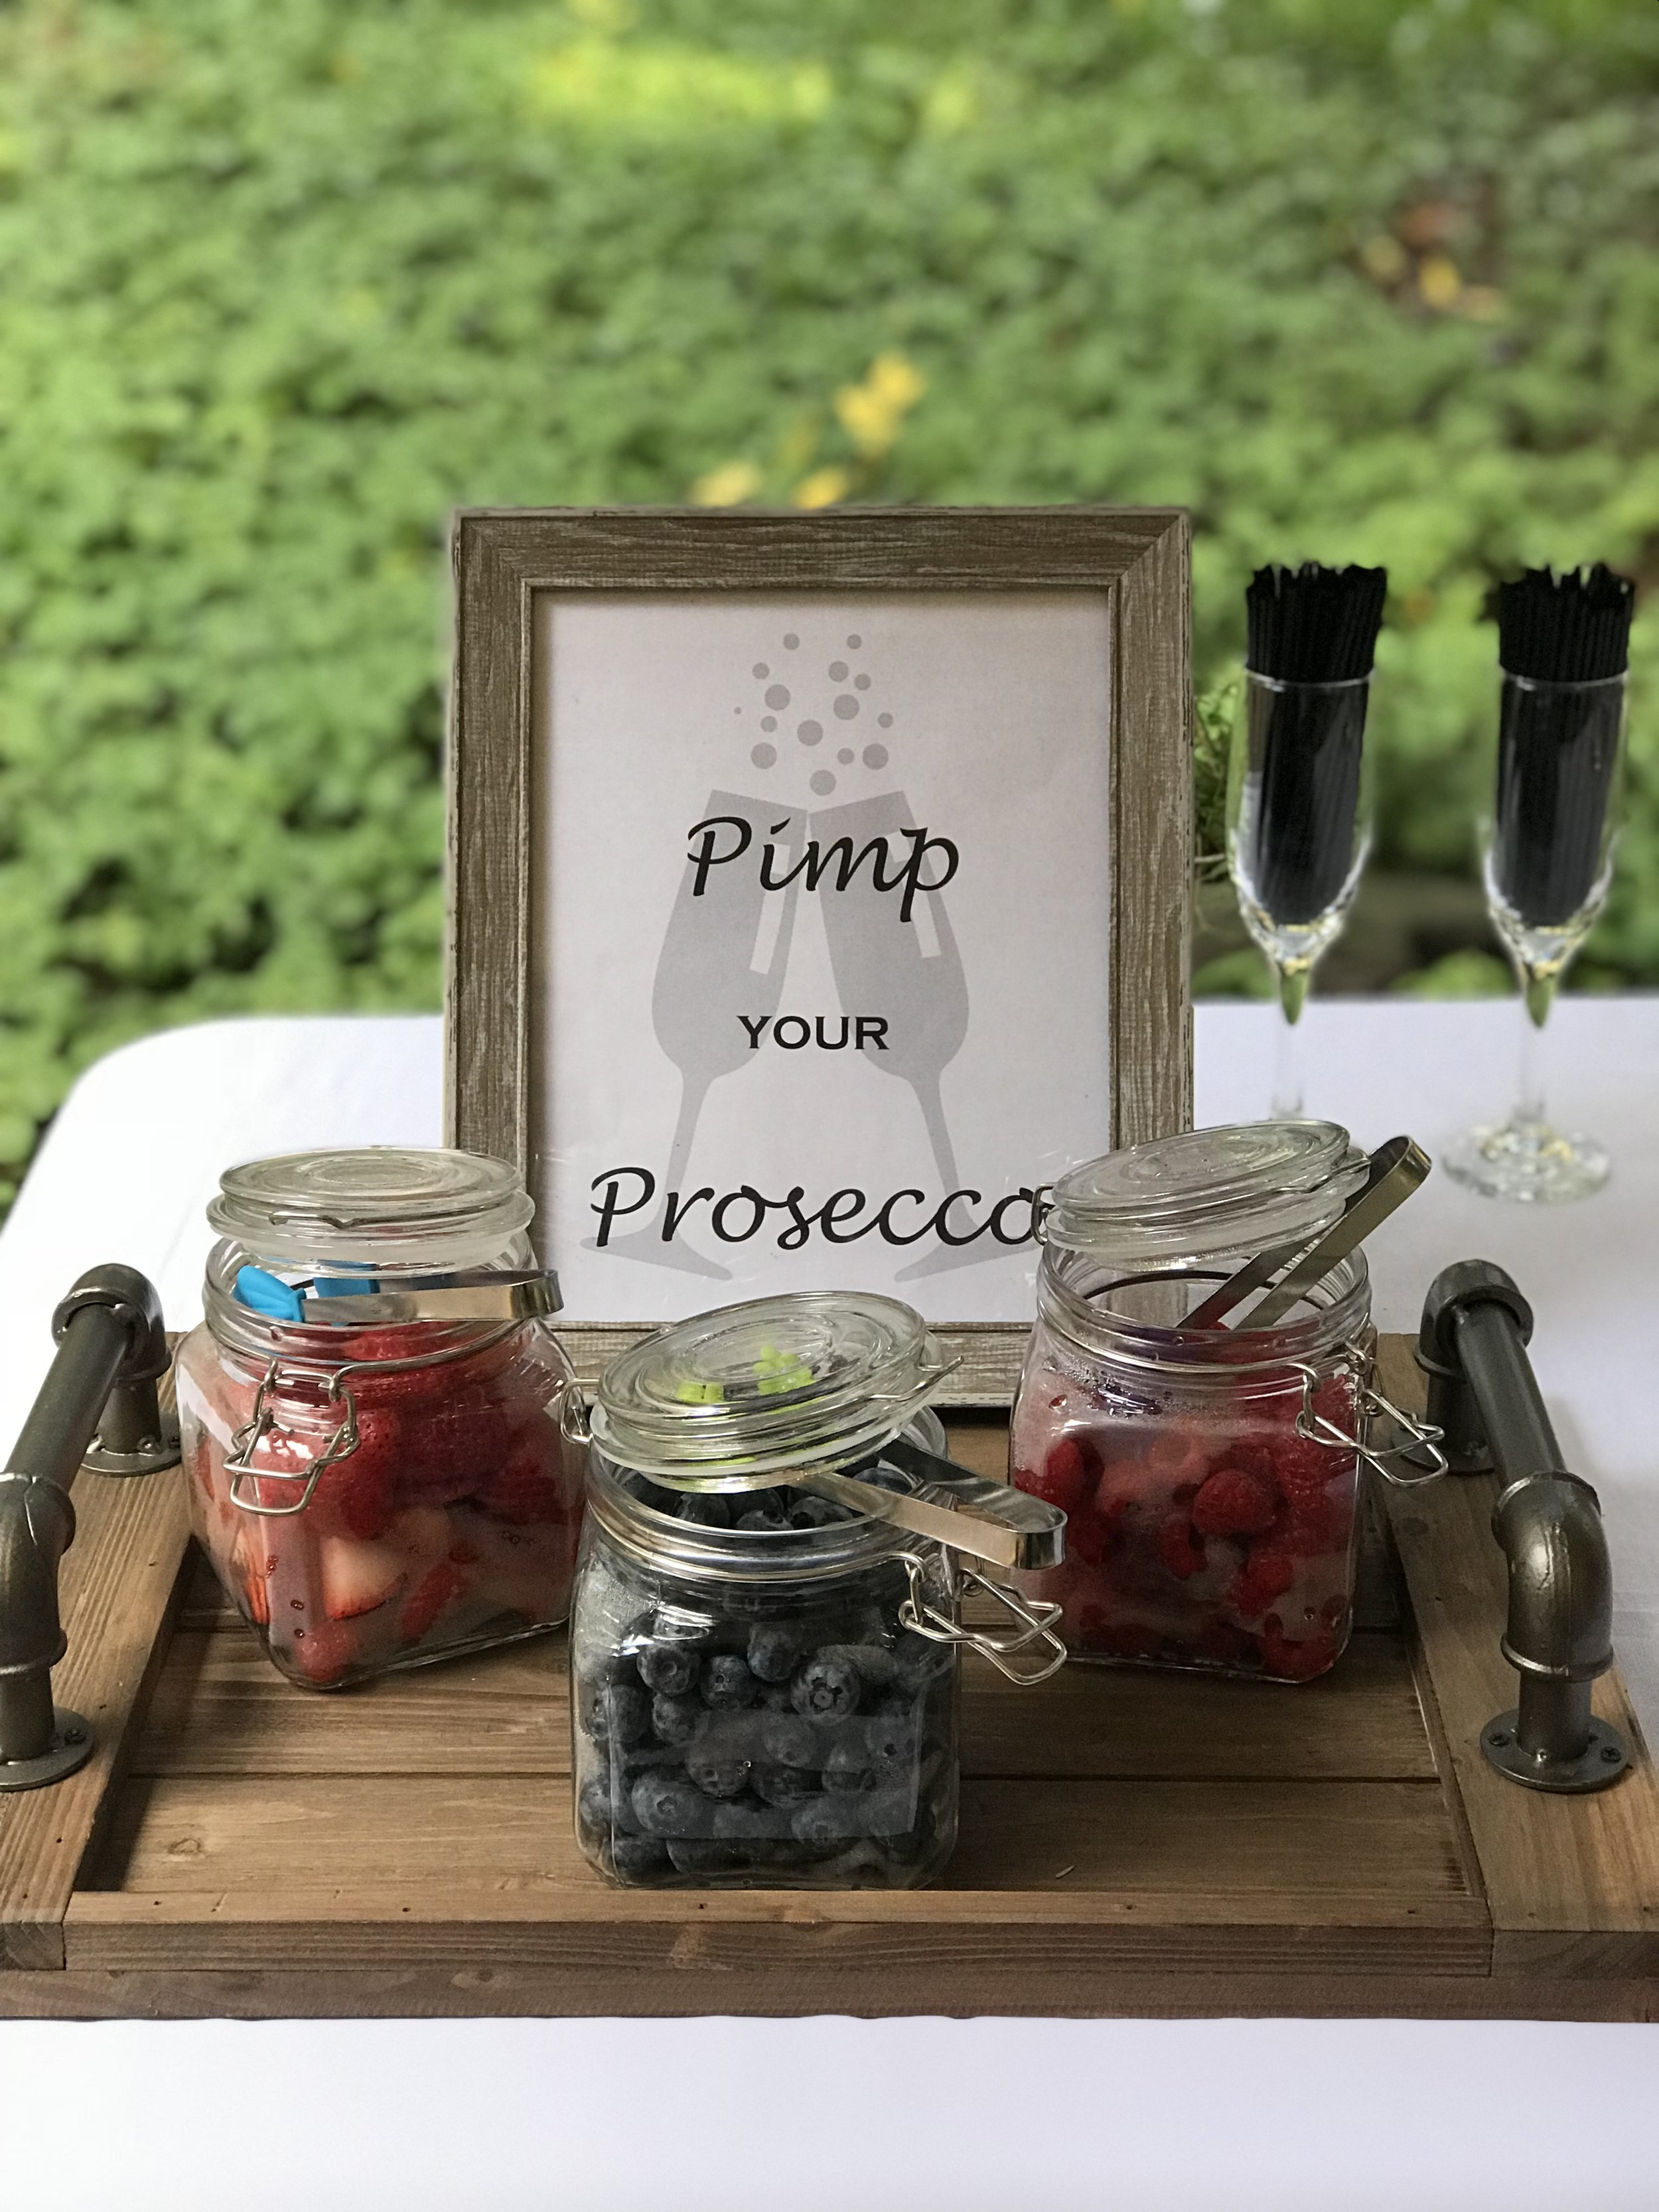 Pimp Your Prosecco Bar  Complimentary with purchase of Prosecco  keg